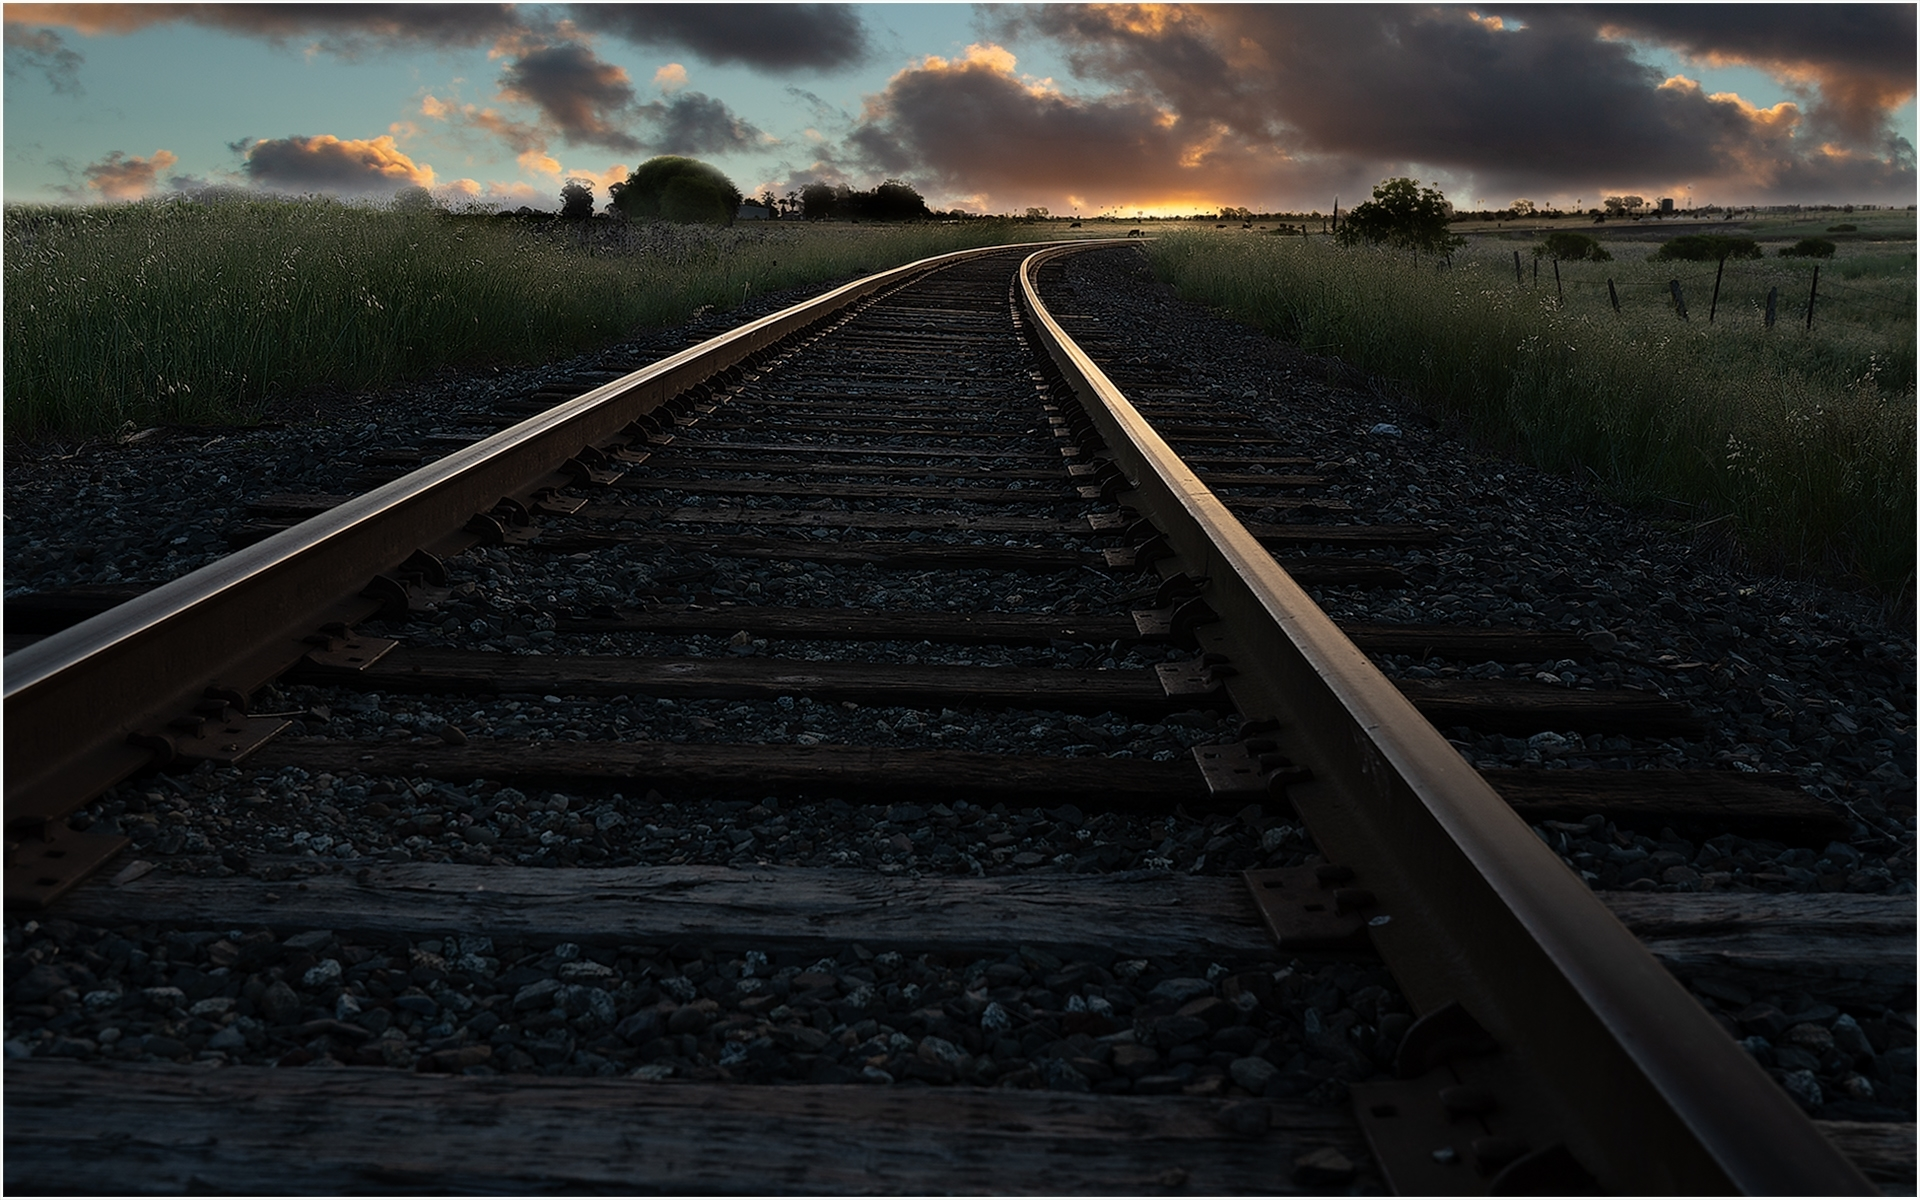 Lone-railroad-tracks-can-draw-me-in-like-a-good-intro-to-a-book.-PM-1-Place-by-Tony-Reynes-SR